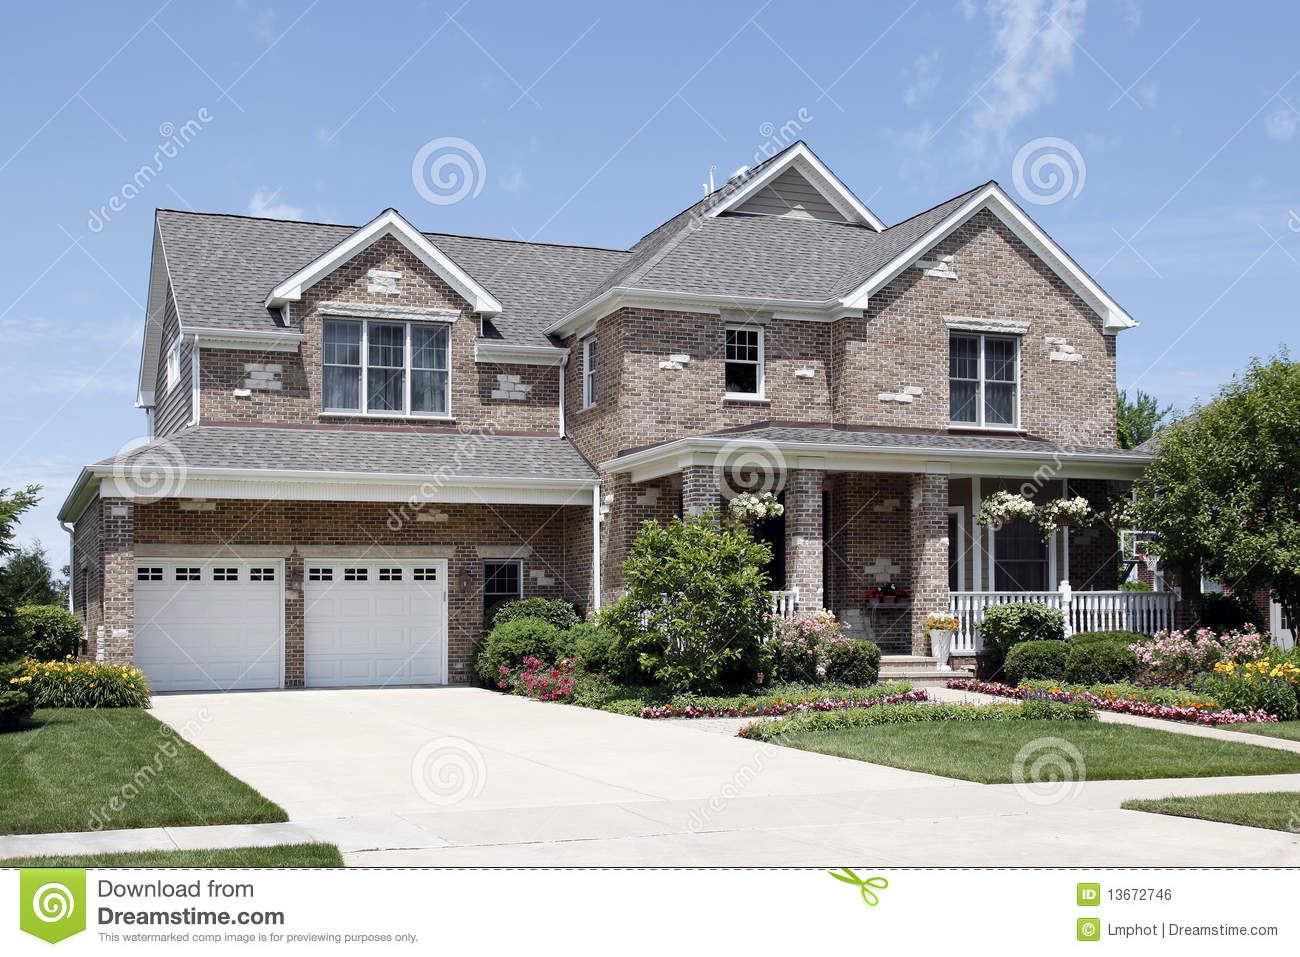 Brick Home With Front Porch Stock Photo Image 13672746